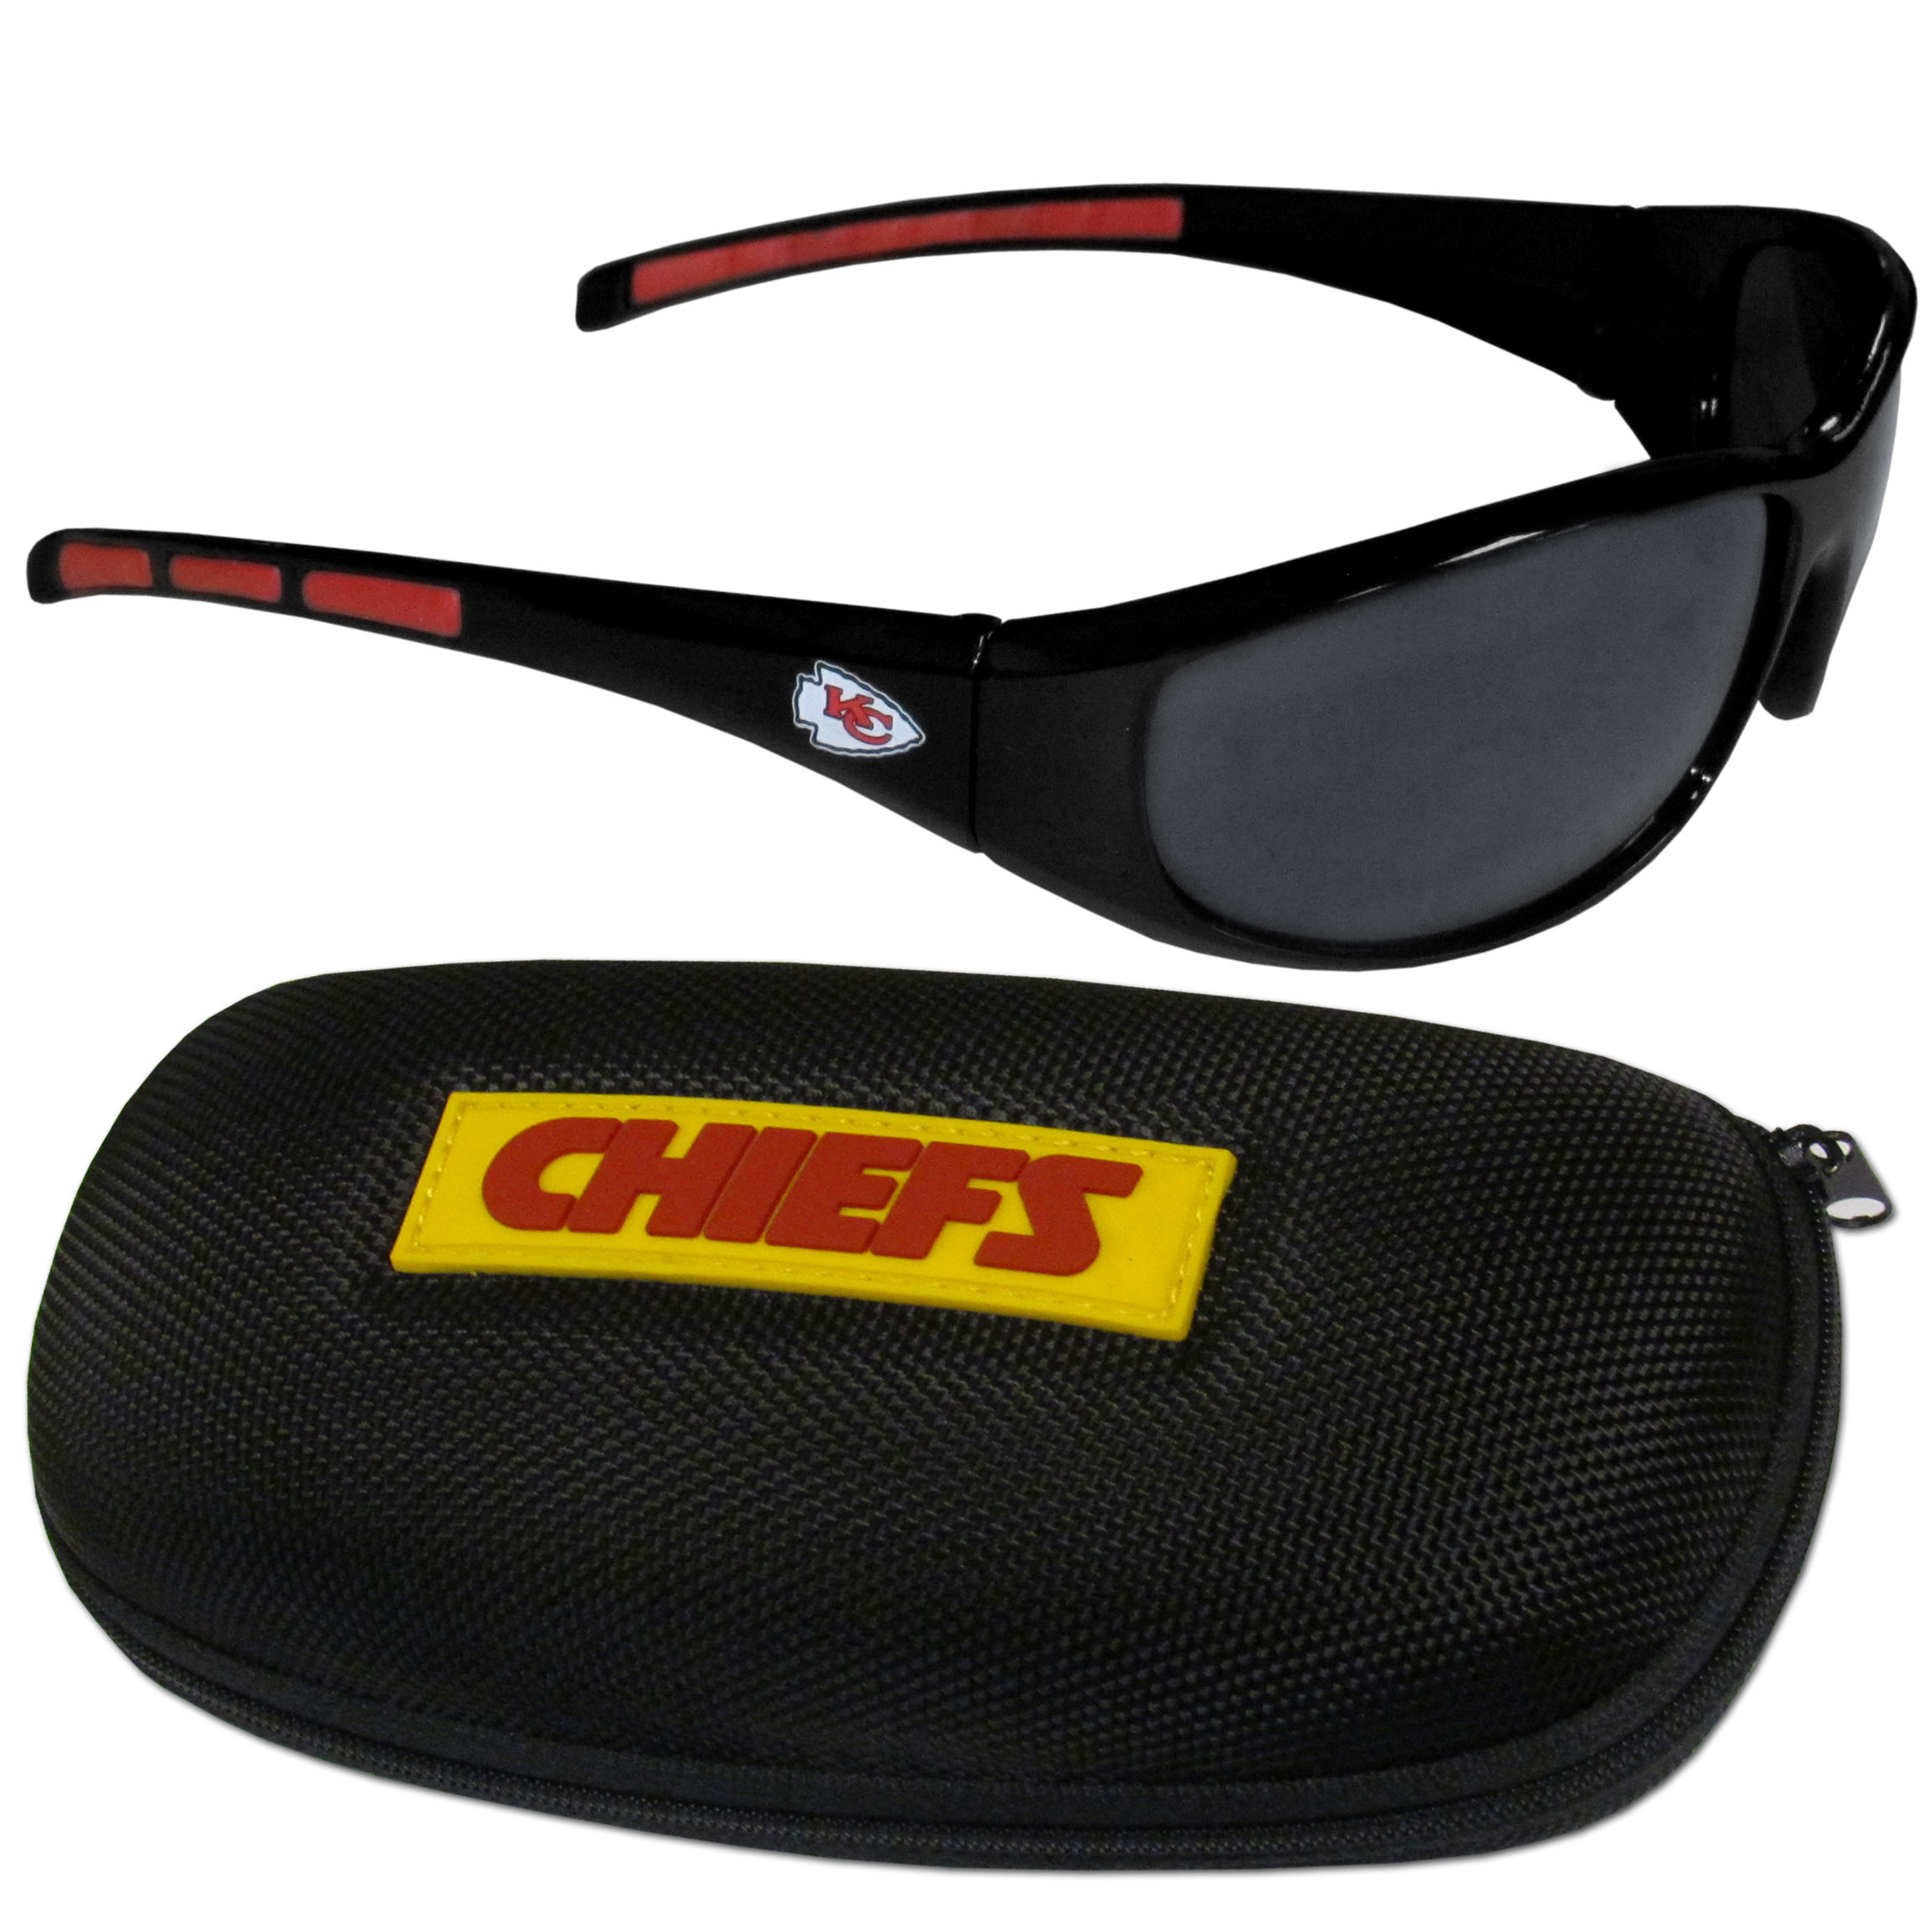 Kansas City Chiefs Wrap Sunglass and Case Set - This great set includes a high quality pair of Kansas City Chiefs wrap sunglasses and hard carrying case.